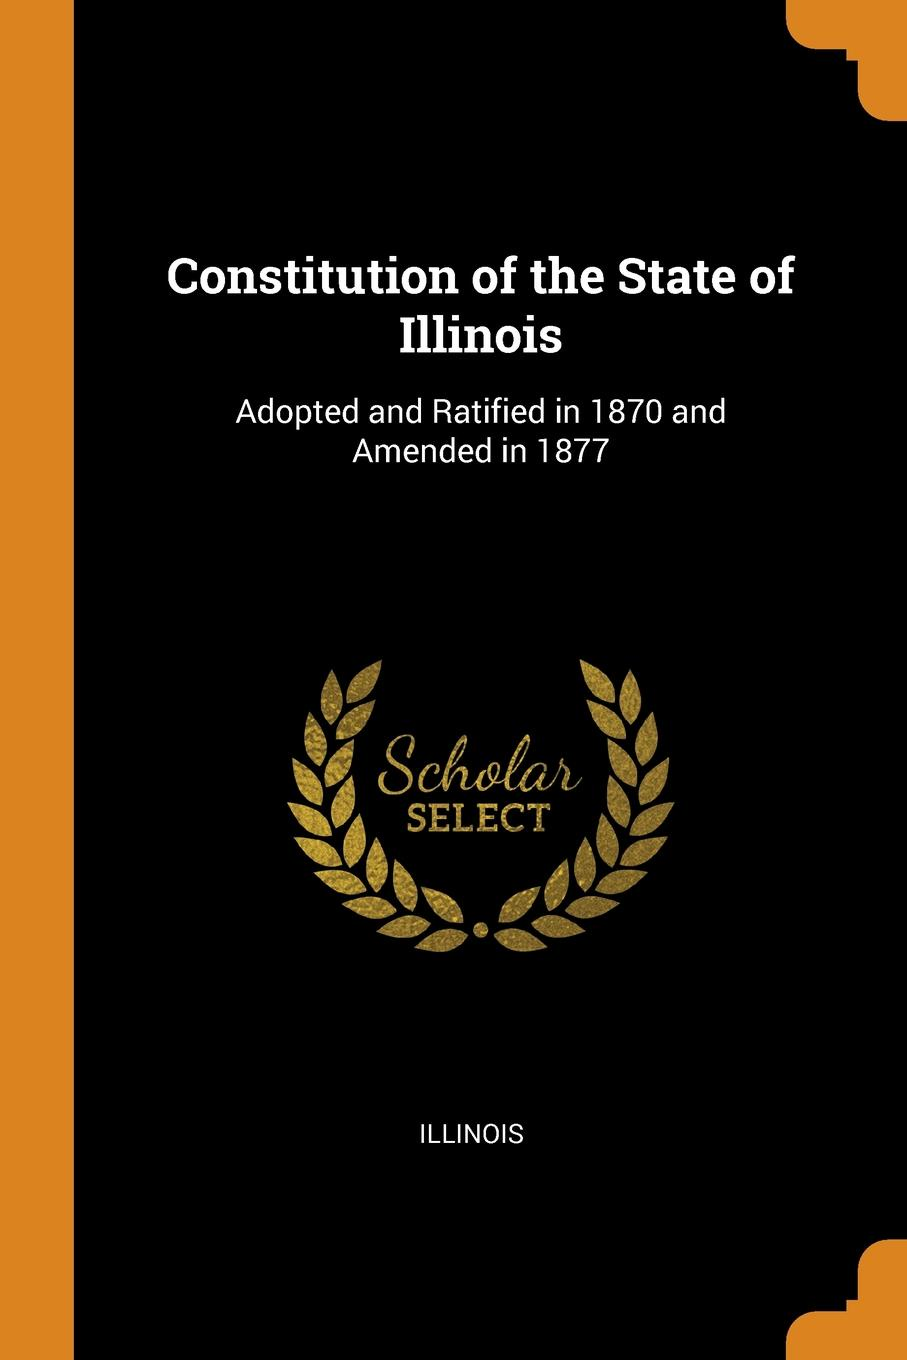 Constitution of the State of Illinois. Adopted and Ratified in 1870 and Amended in 1877